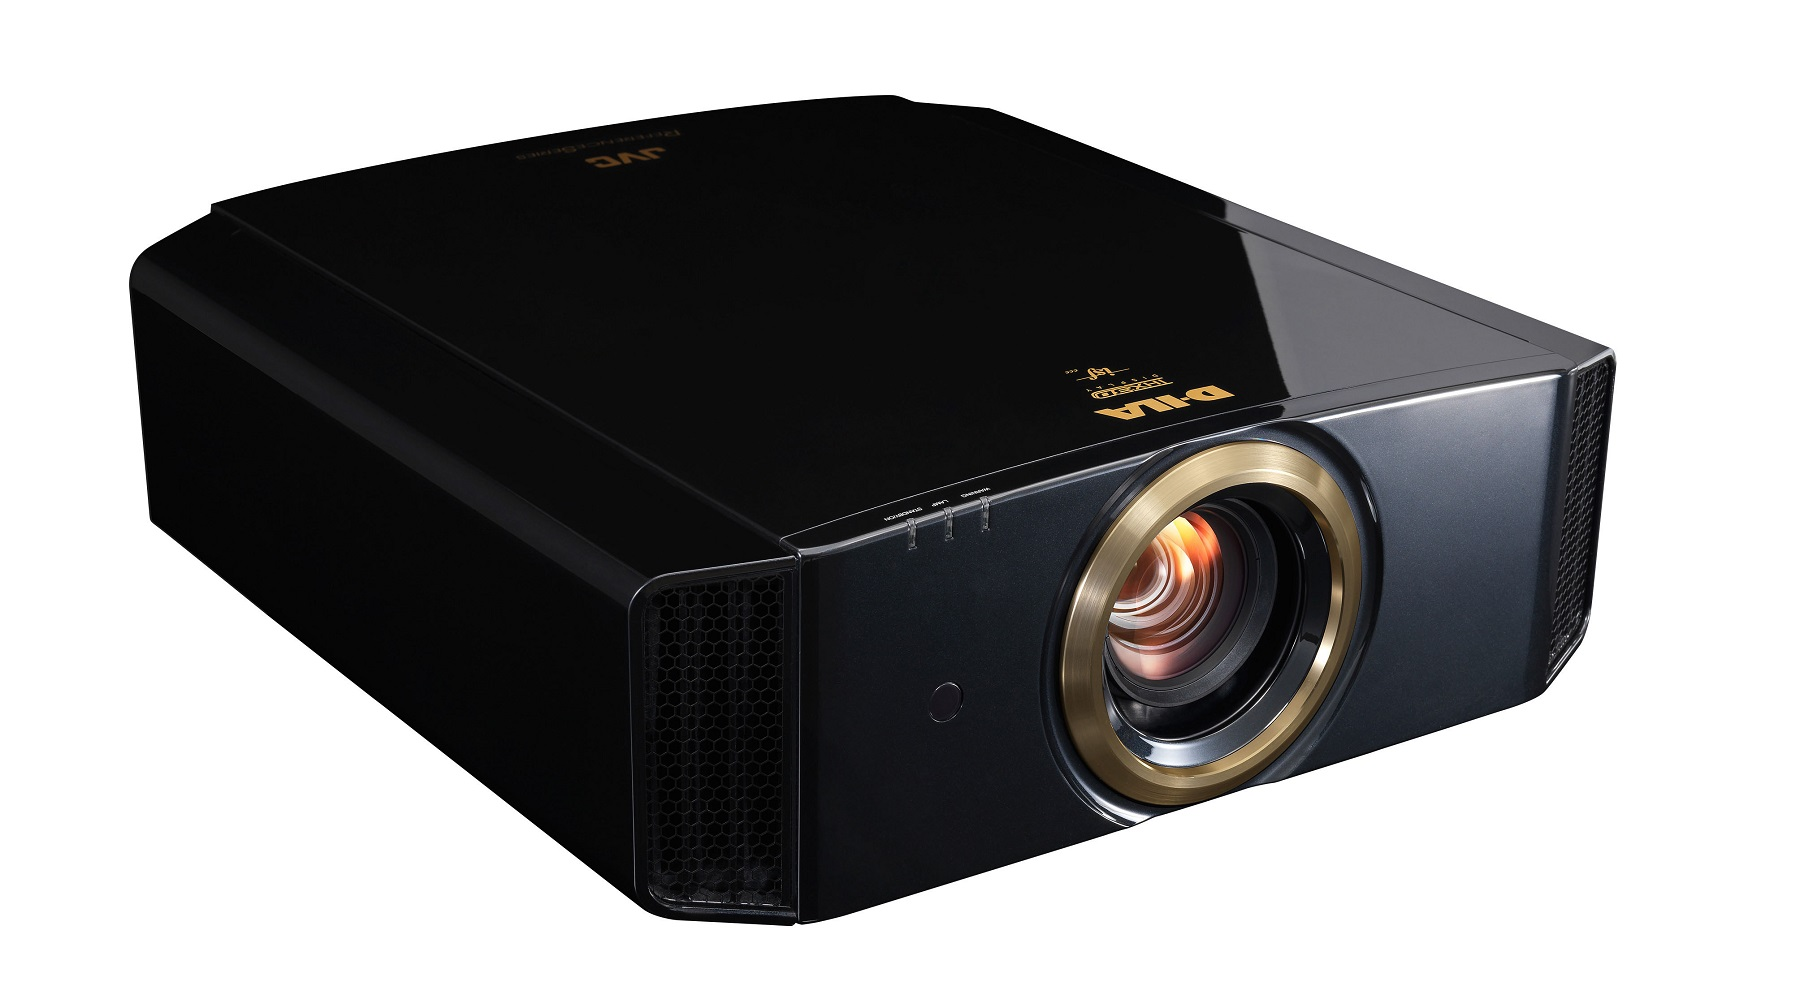 DLA-RS640U REFERENCE SERIES CUSTOM INSTALL D-ILA PROJECTOR